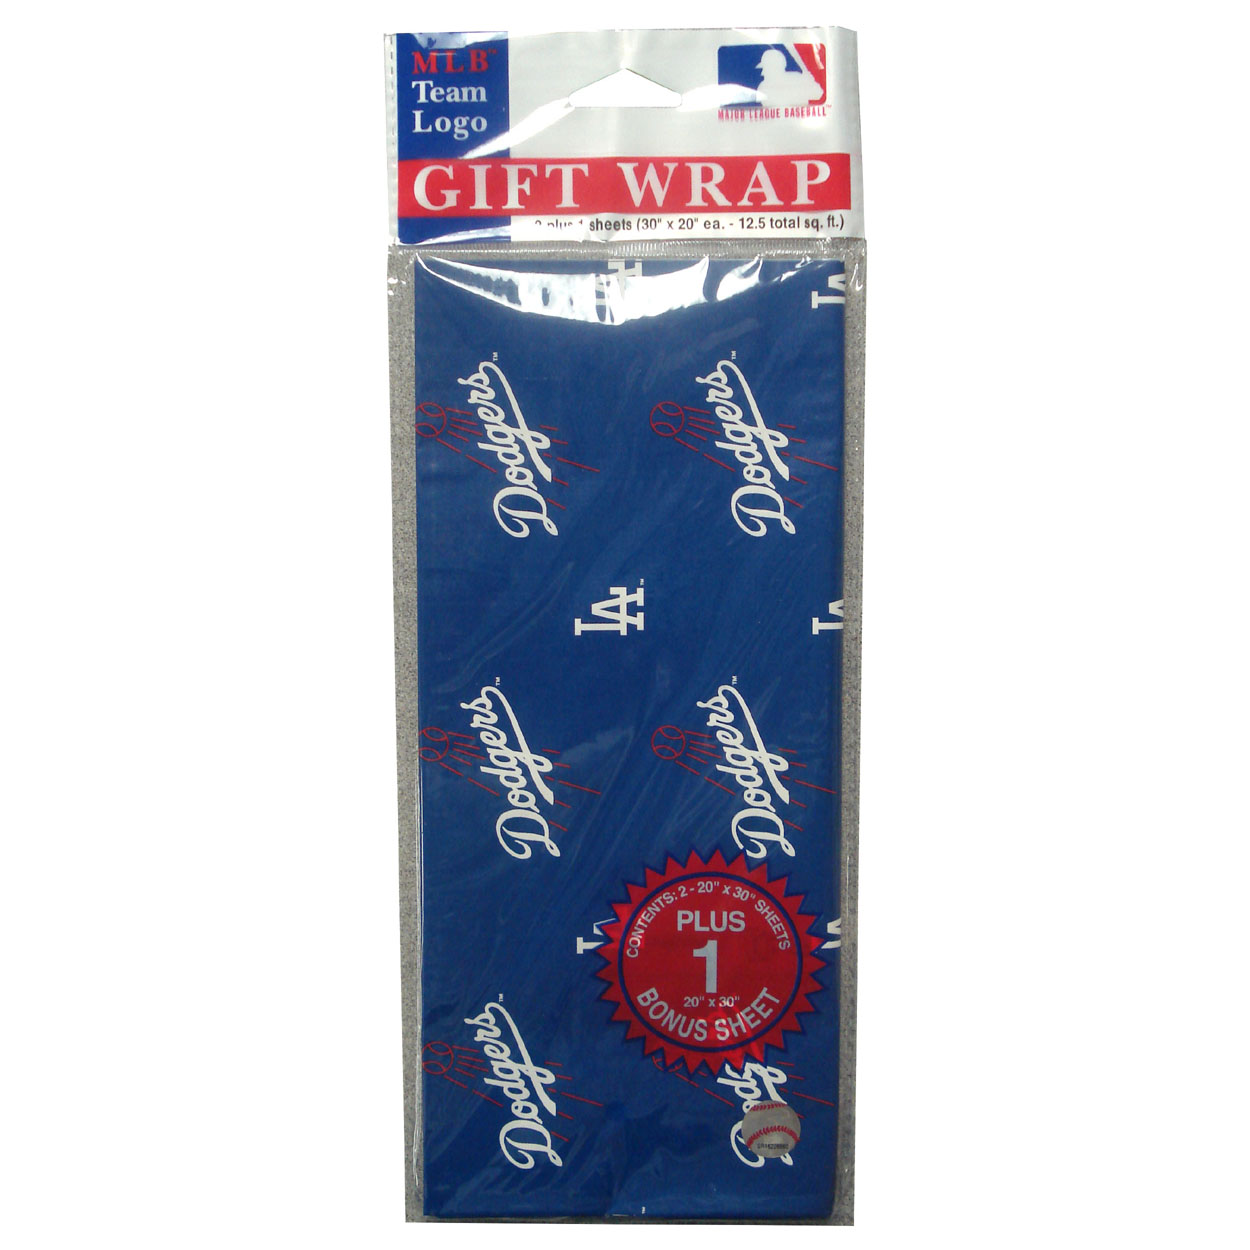 2-Packages of MLB Gift Wrap - Dodgers